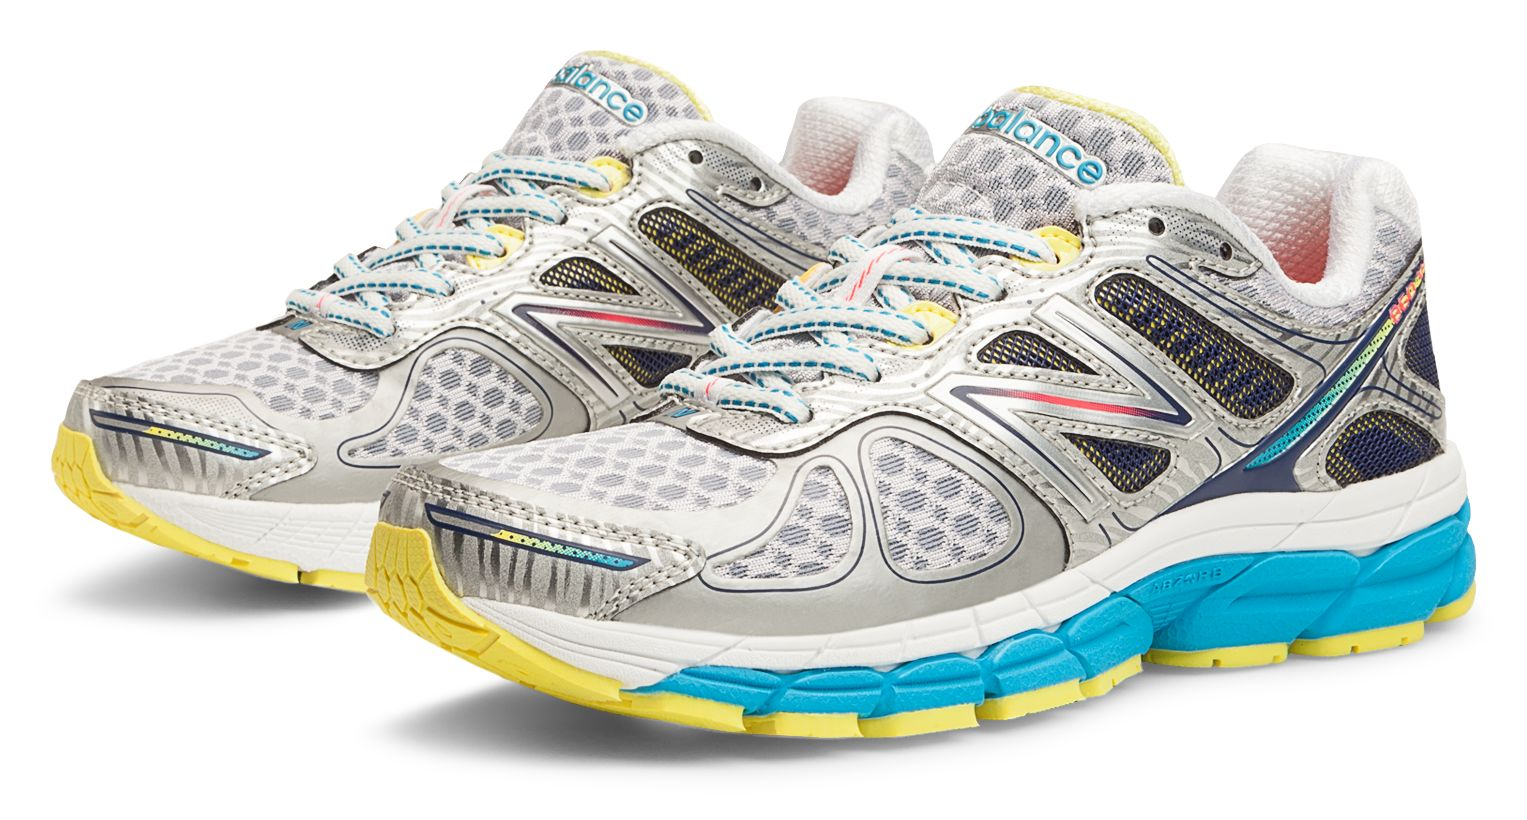 New Balance Womens 860v 4 Stability Running Shoes White